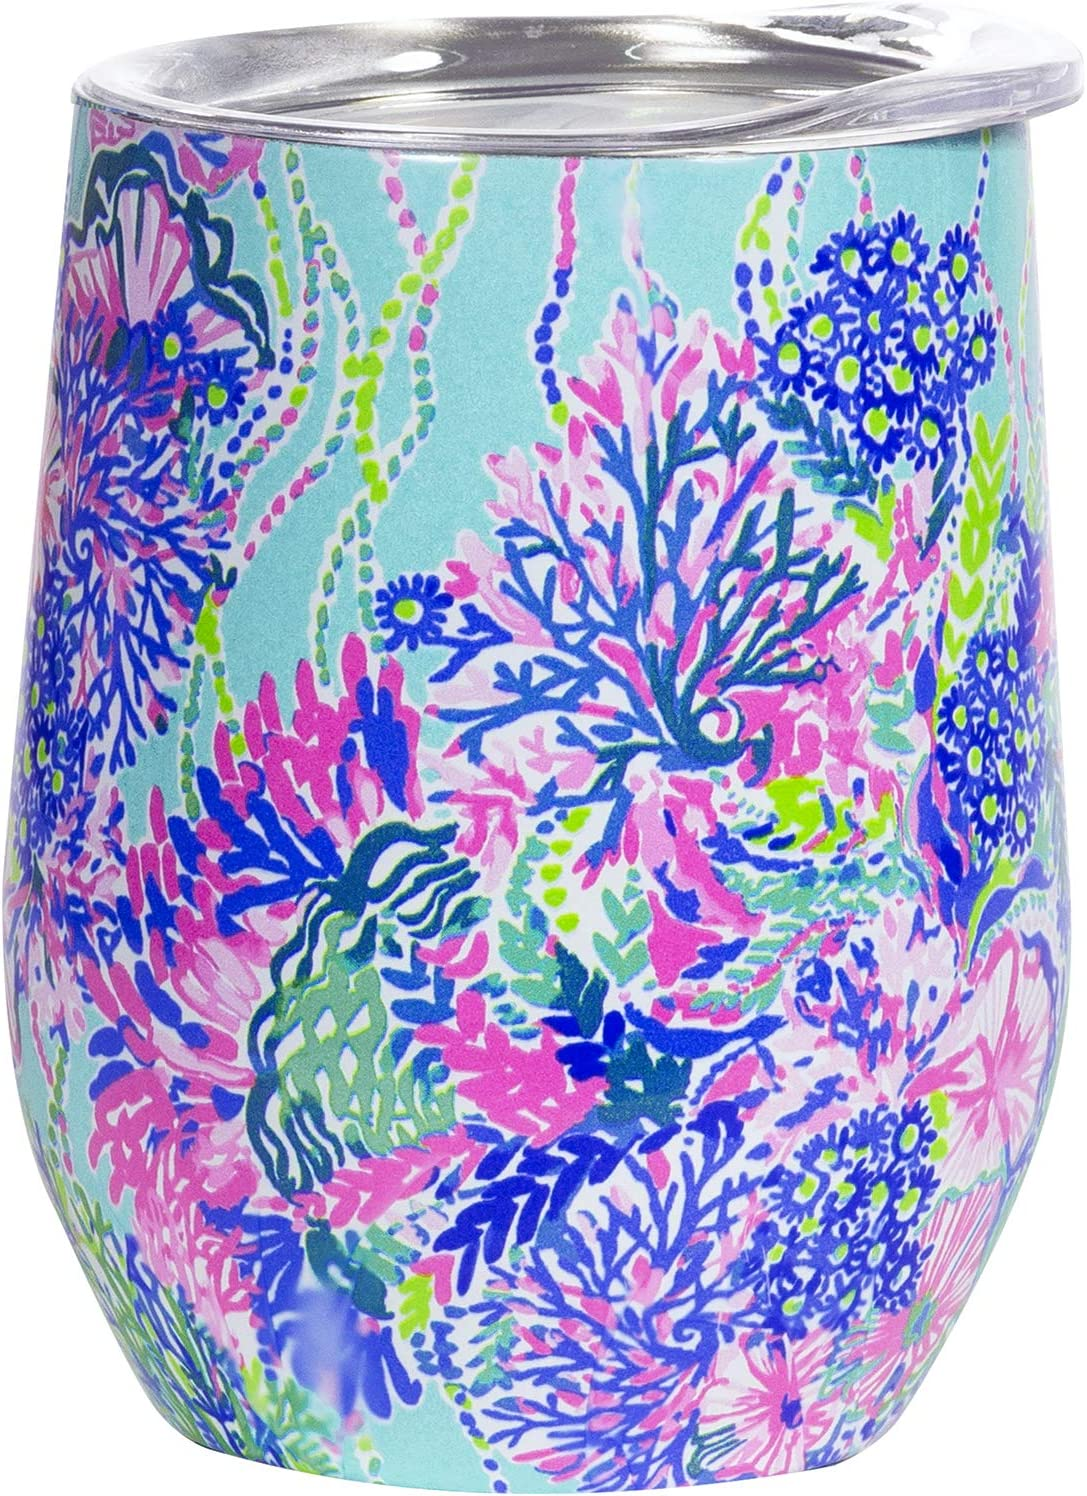 Lilly Pulitzer 12 Ounce Insulated Stemless Wine Tumbler with Lid, Stainless Steel Travel Cup, Beach You To It